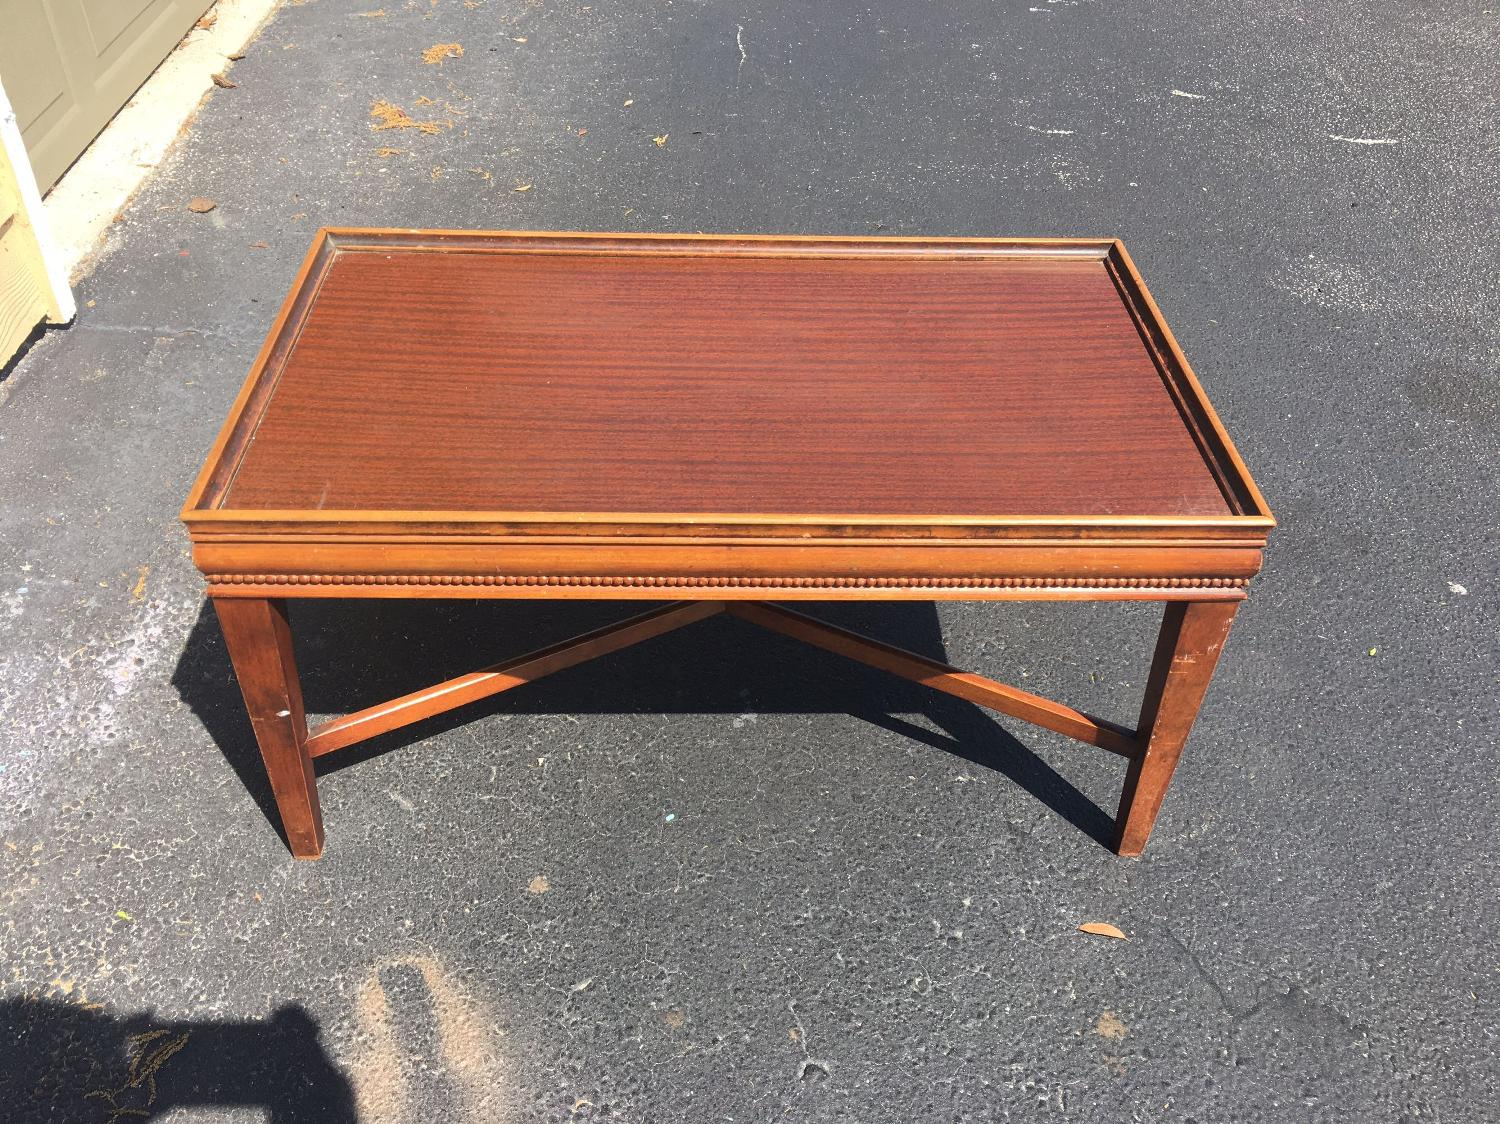 Find More Wooden Coffee Table For Sale At Up To 90 Off Jacksonville Beach Fl